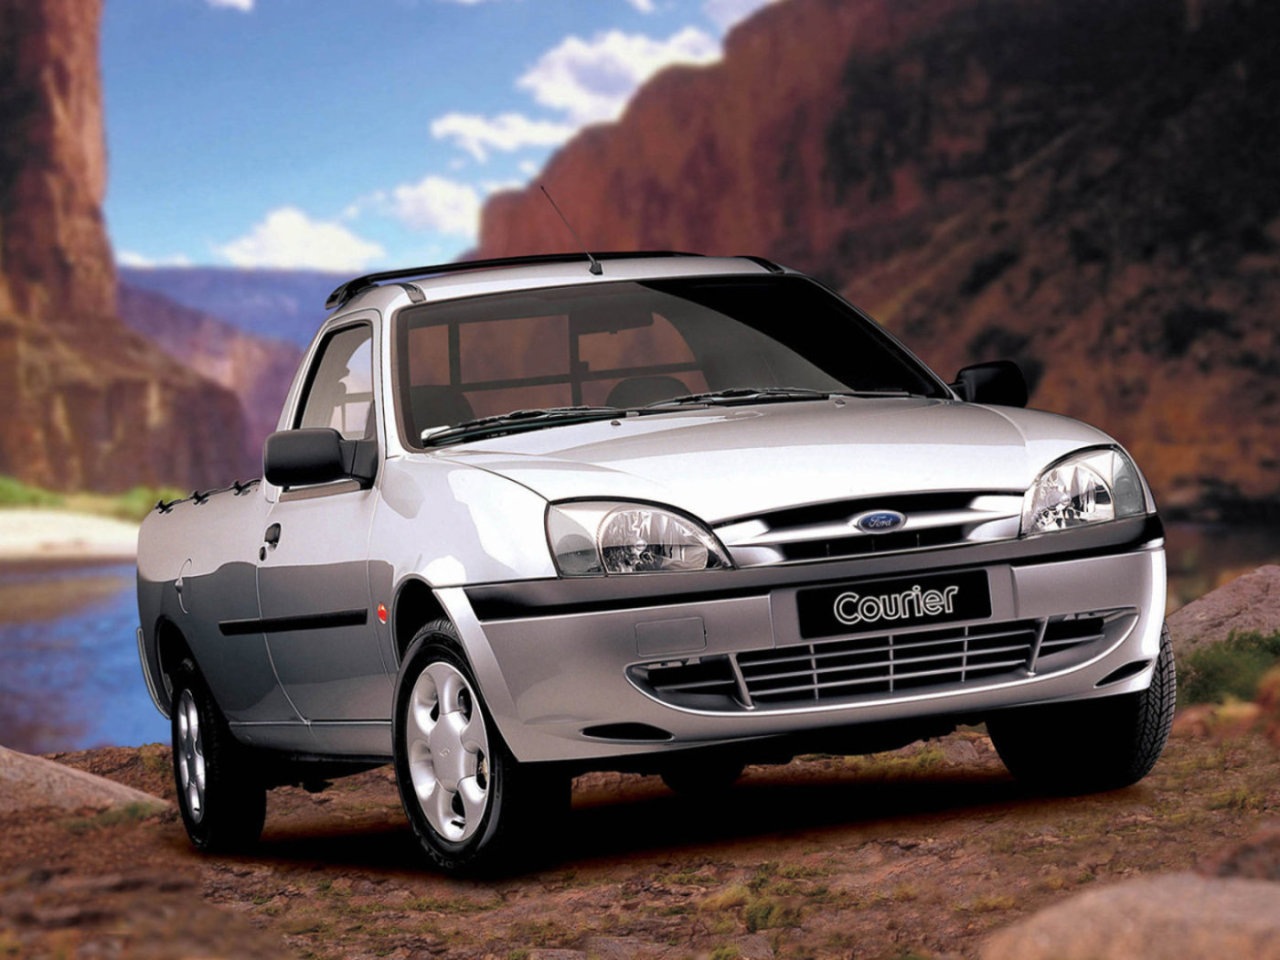 Ford_courier_%d1%84%d1%83%d1%80%d0%b3%d0%be%d0%bd_(jv_)_original